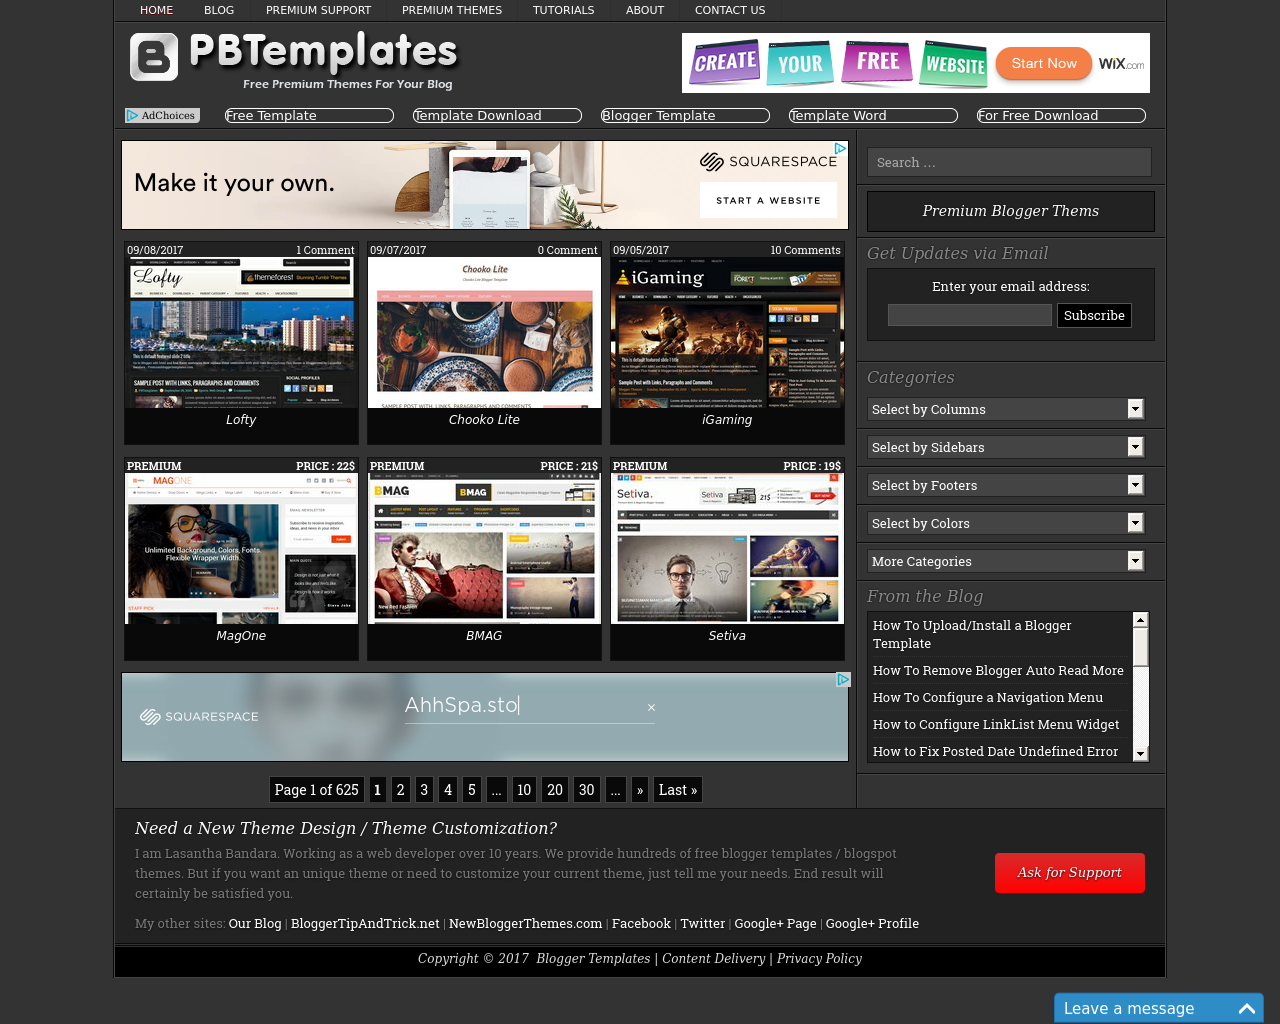 PBTemplates-Advertising-Reviews-Pricing